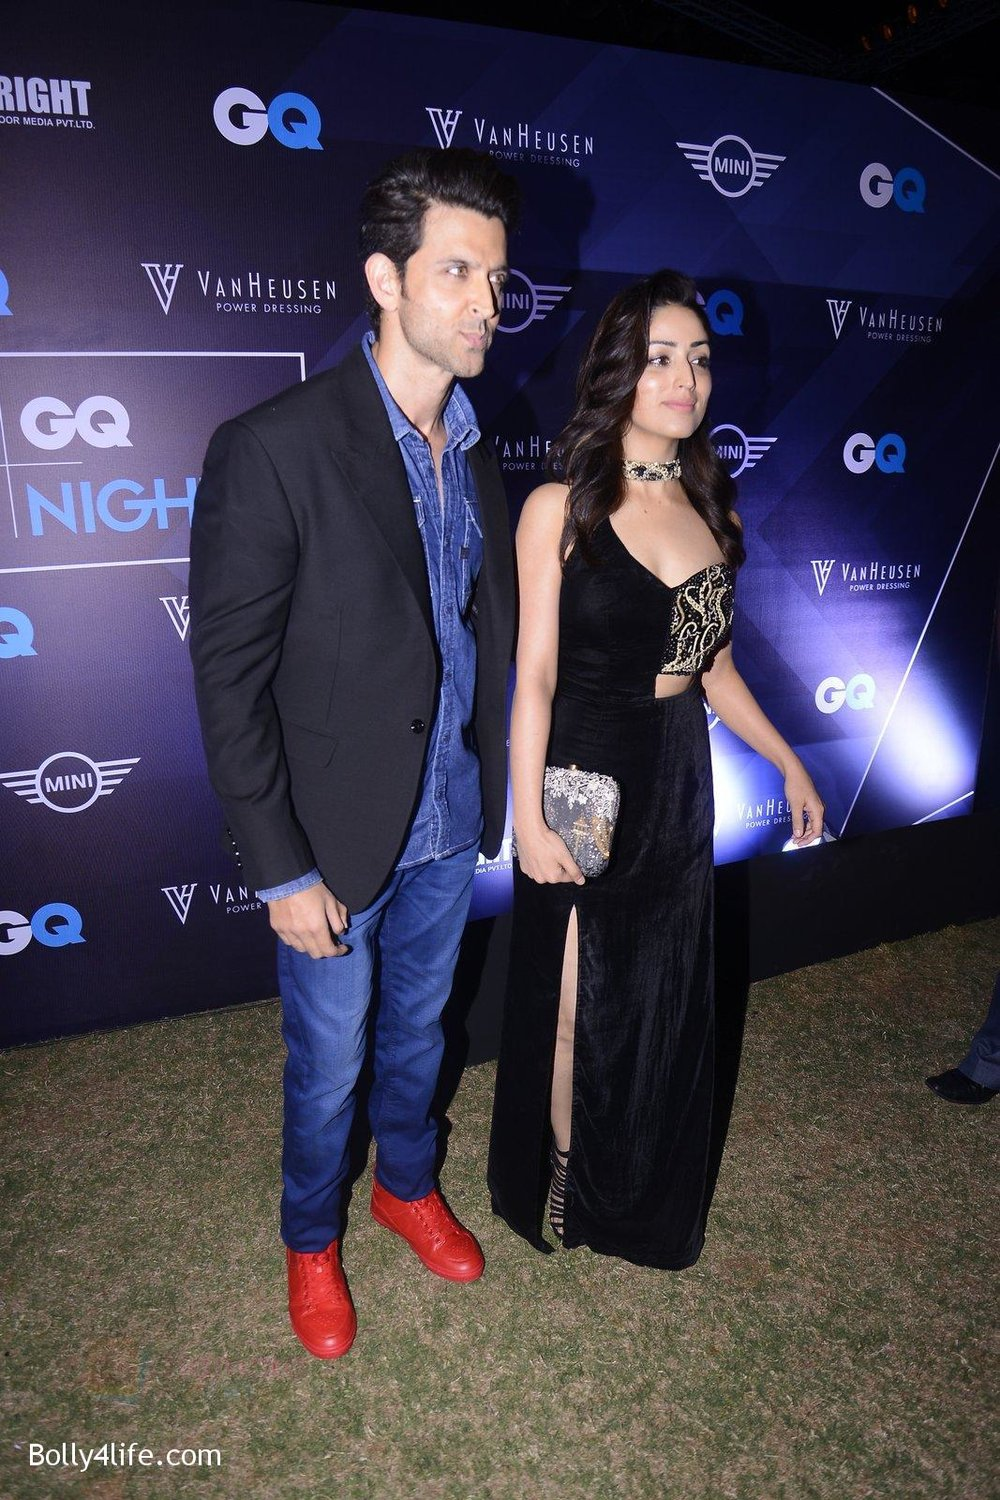 hpse_fullsize_34724_2032198690_Hrithik-Roshan-Yami-Gautam-at-GQ-fashion-nights-on-3rd-Dec-2016-231_58450fd591a42.jpg